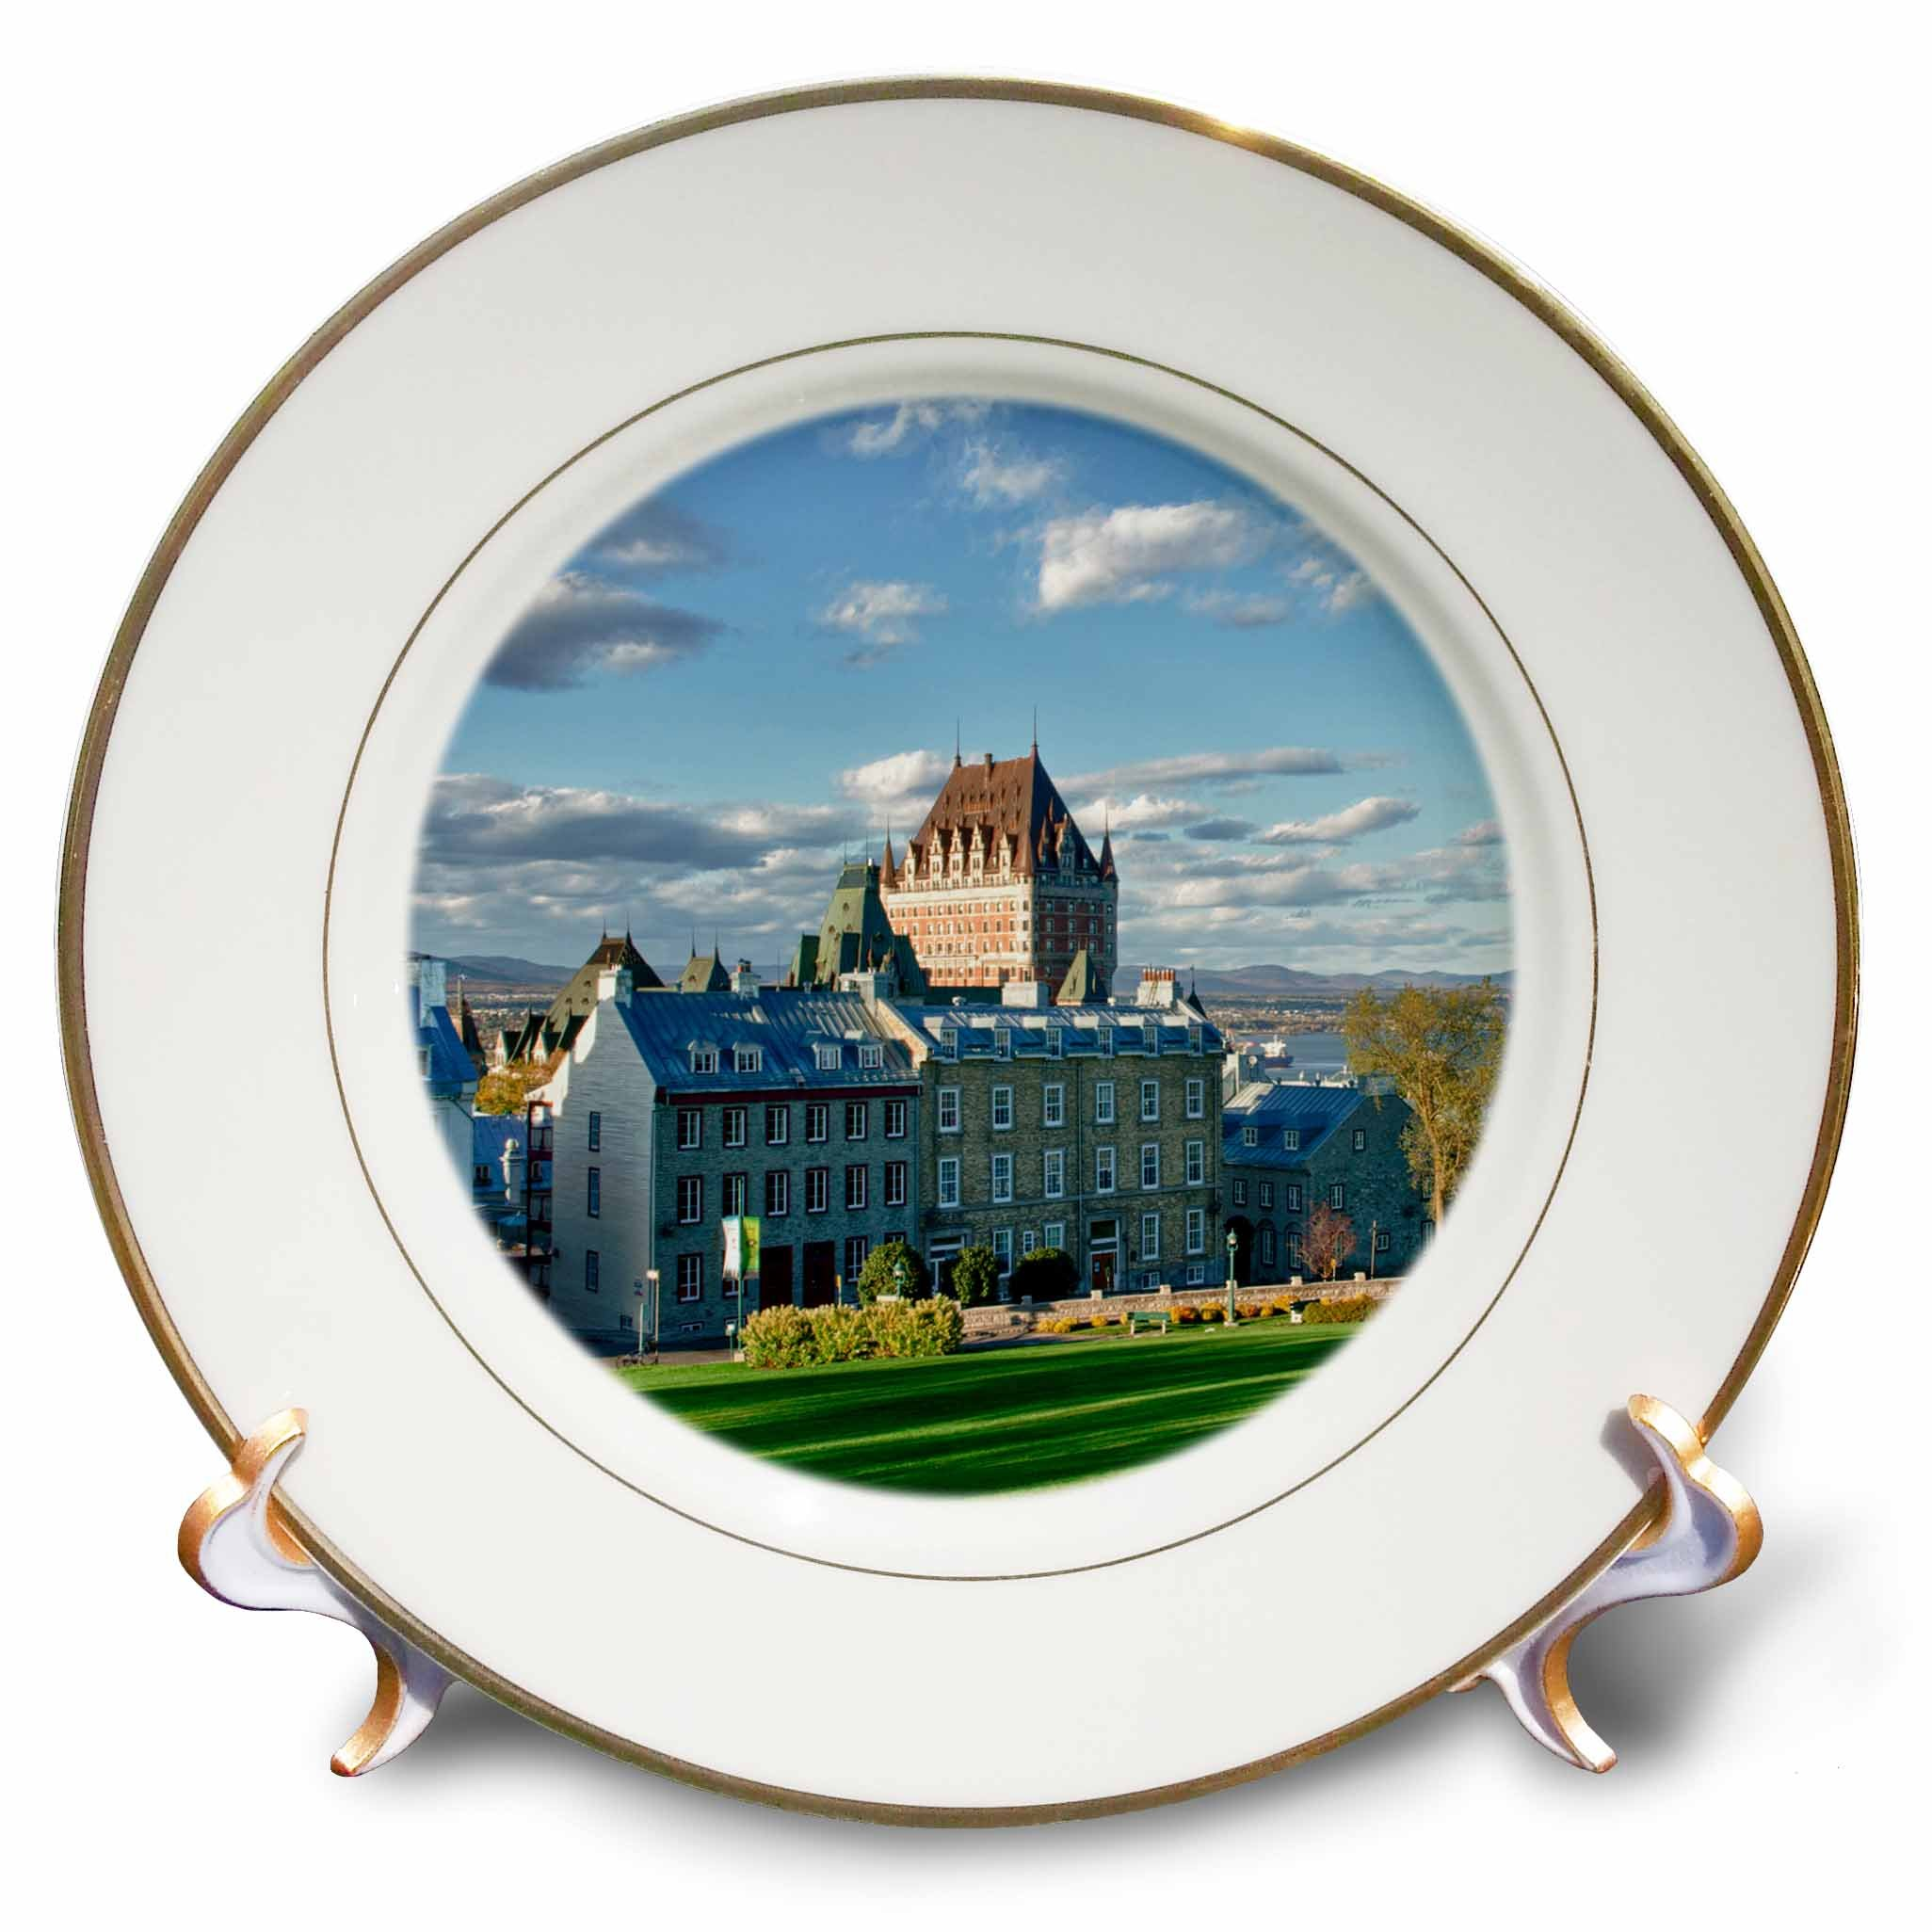 3dRose Canada, Quebec, City. The Chateau Frontenac Hotel. - Porcelain plate, 8-Inch (cp_205920_1)